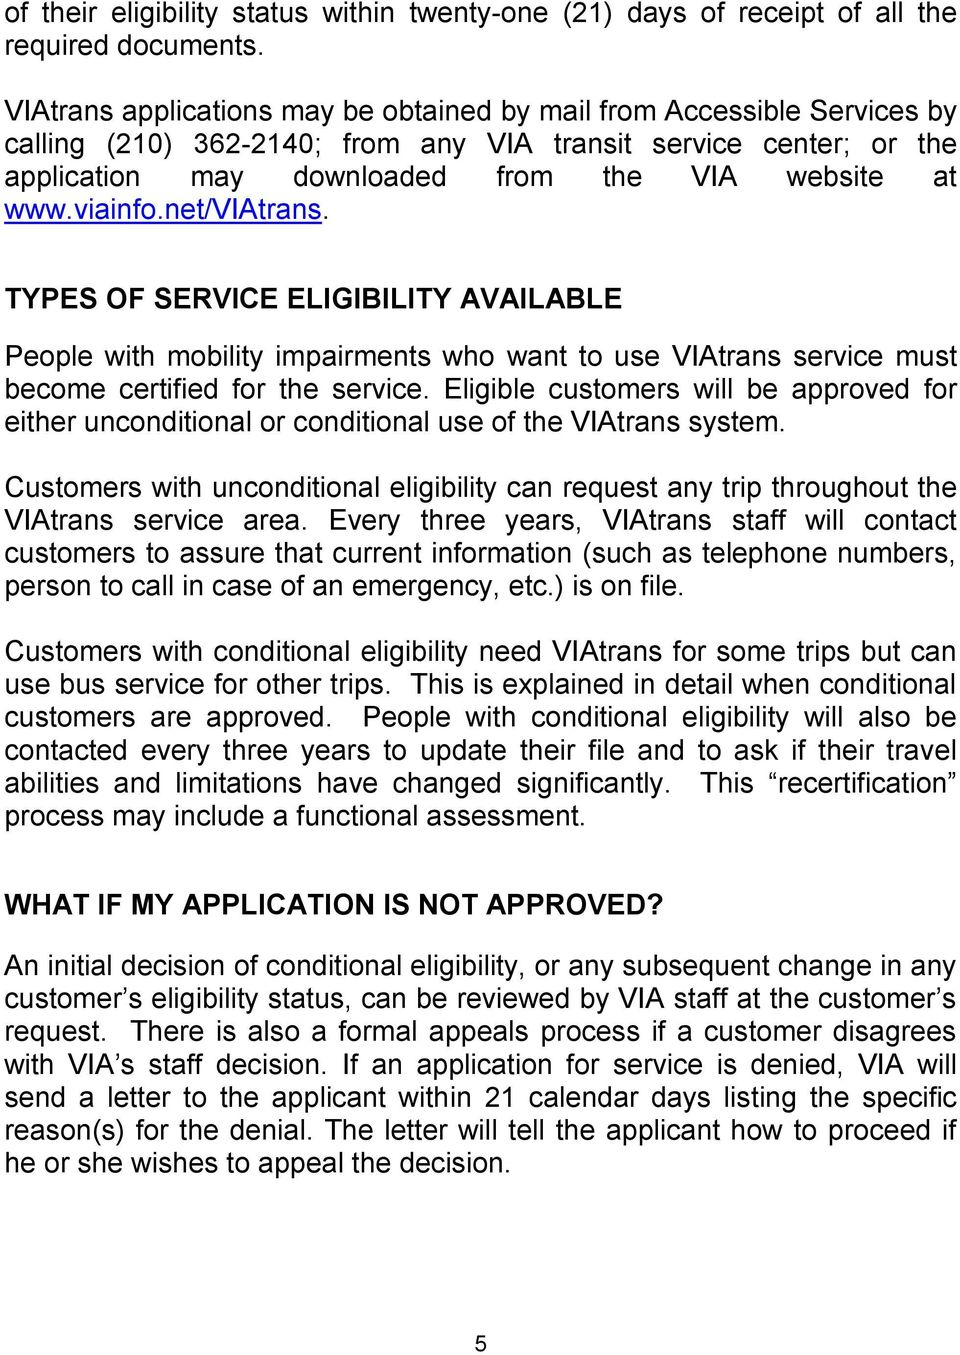 viainfo.net/viatrans. TYPES OF SERVICE ELIGIBILITY AVAILABLE People with mobility impairments who want to use VIAtrans service must become certified for the service.